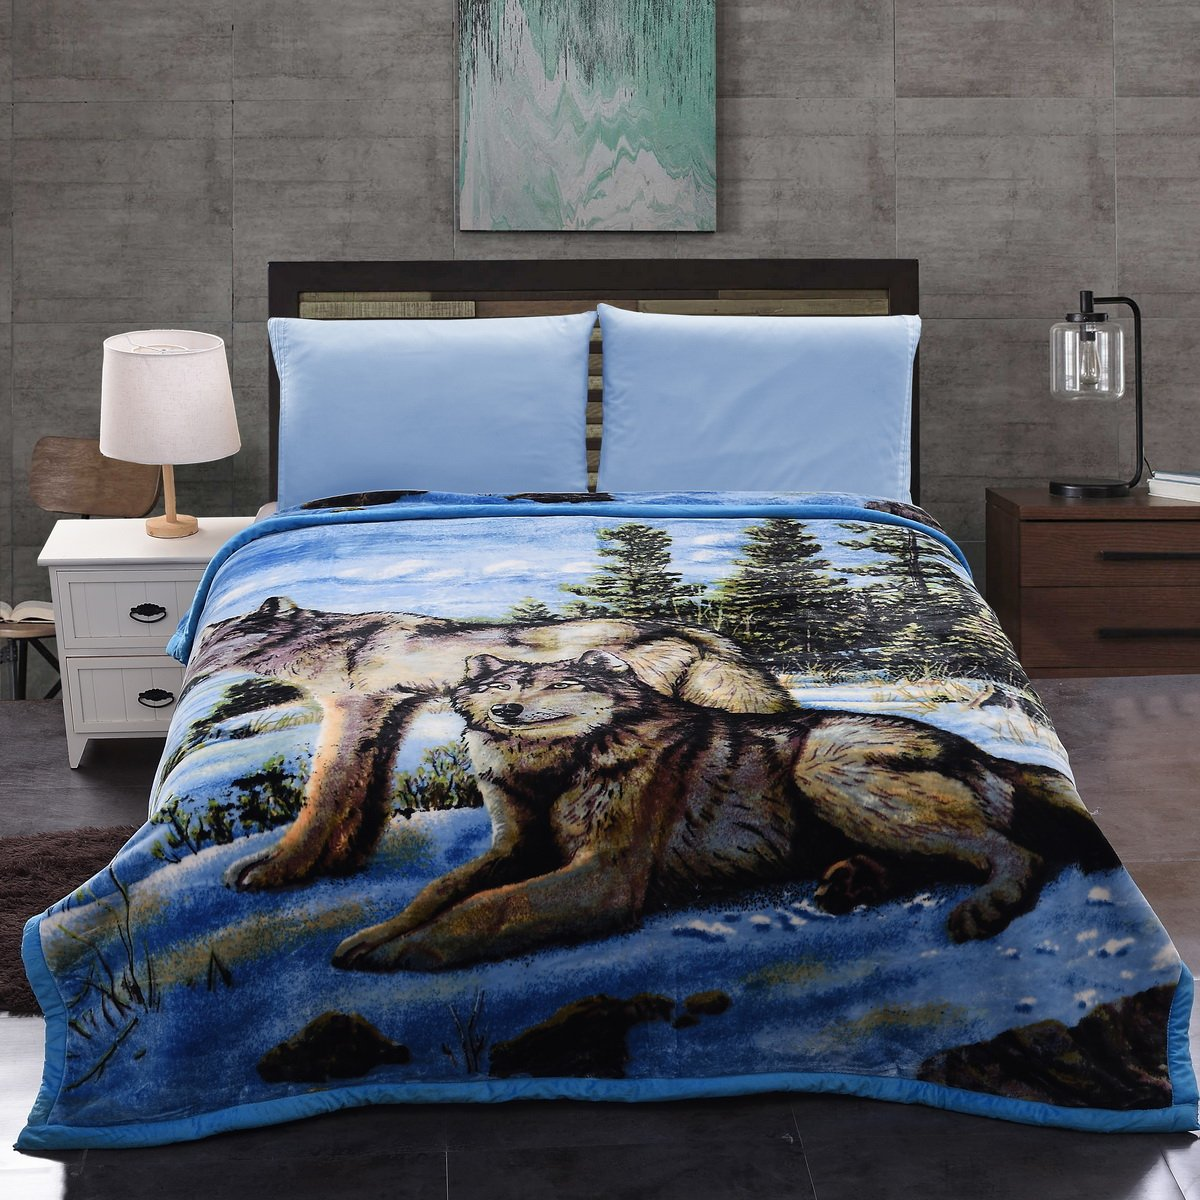 Jml Plush Crystal Velvet Heavy Blanket - Made of 750 GSM Microfiber in 95''x85'' - Faux, Mink and Embossing Dual Layers - Animal Printed in King Size, 9LB Weight by Jml (Image #3)